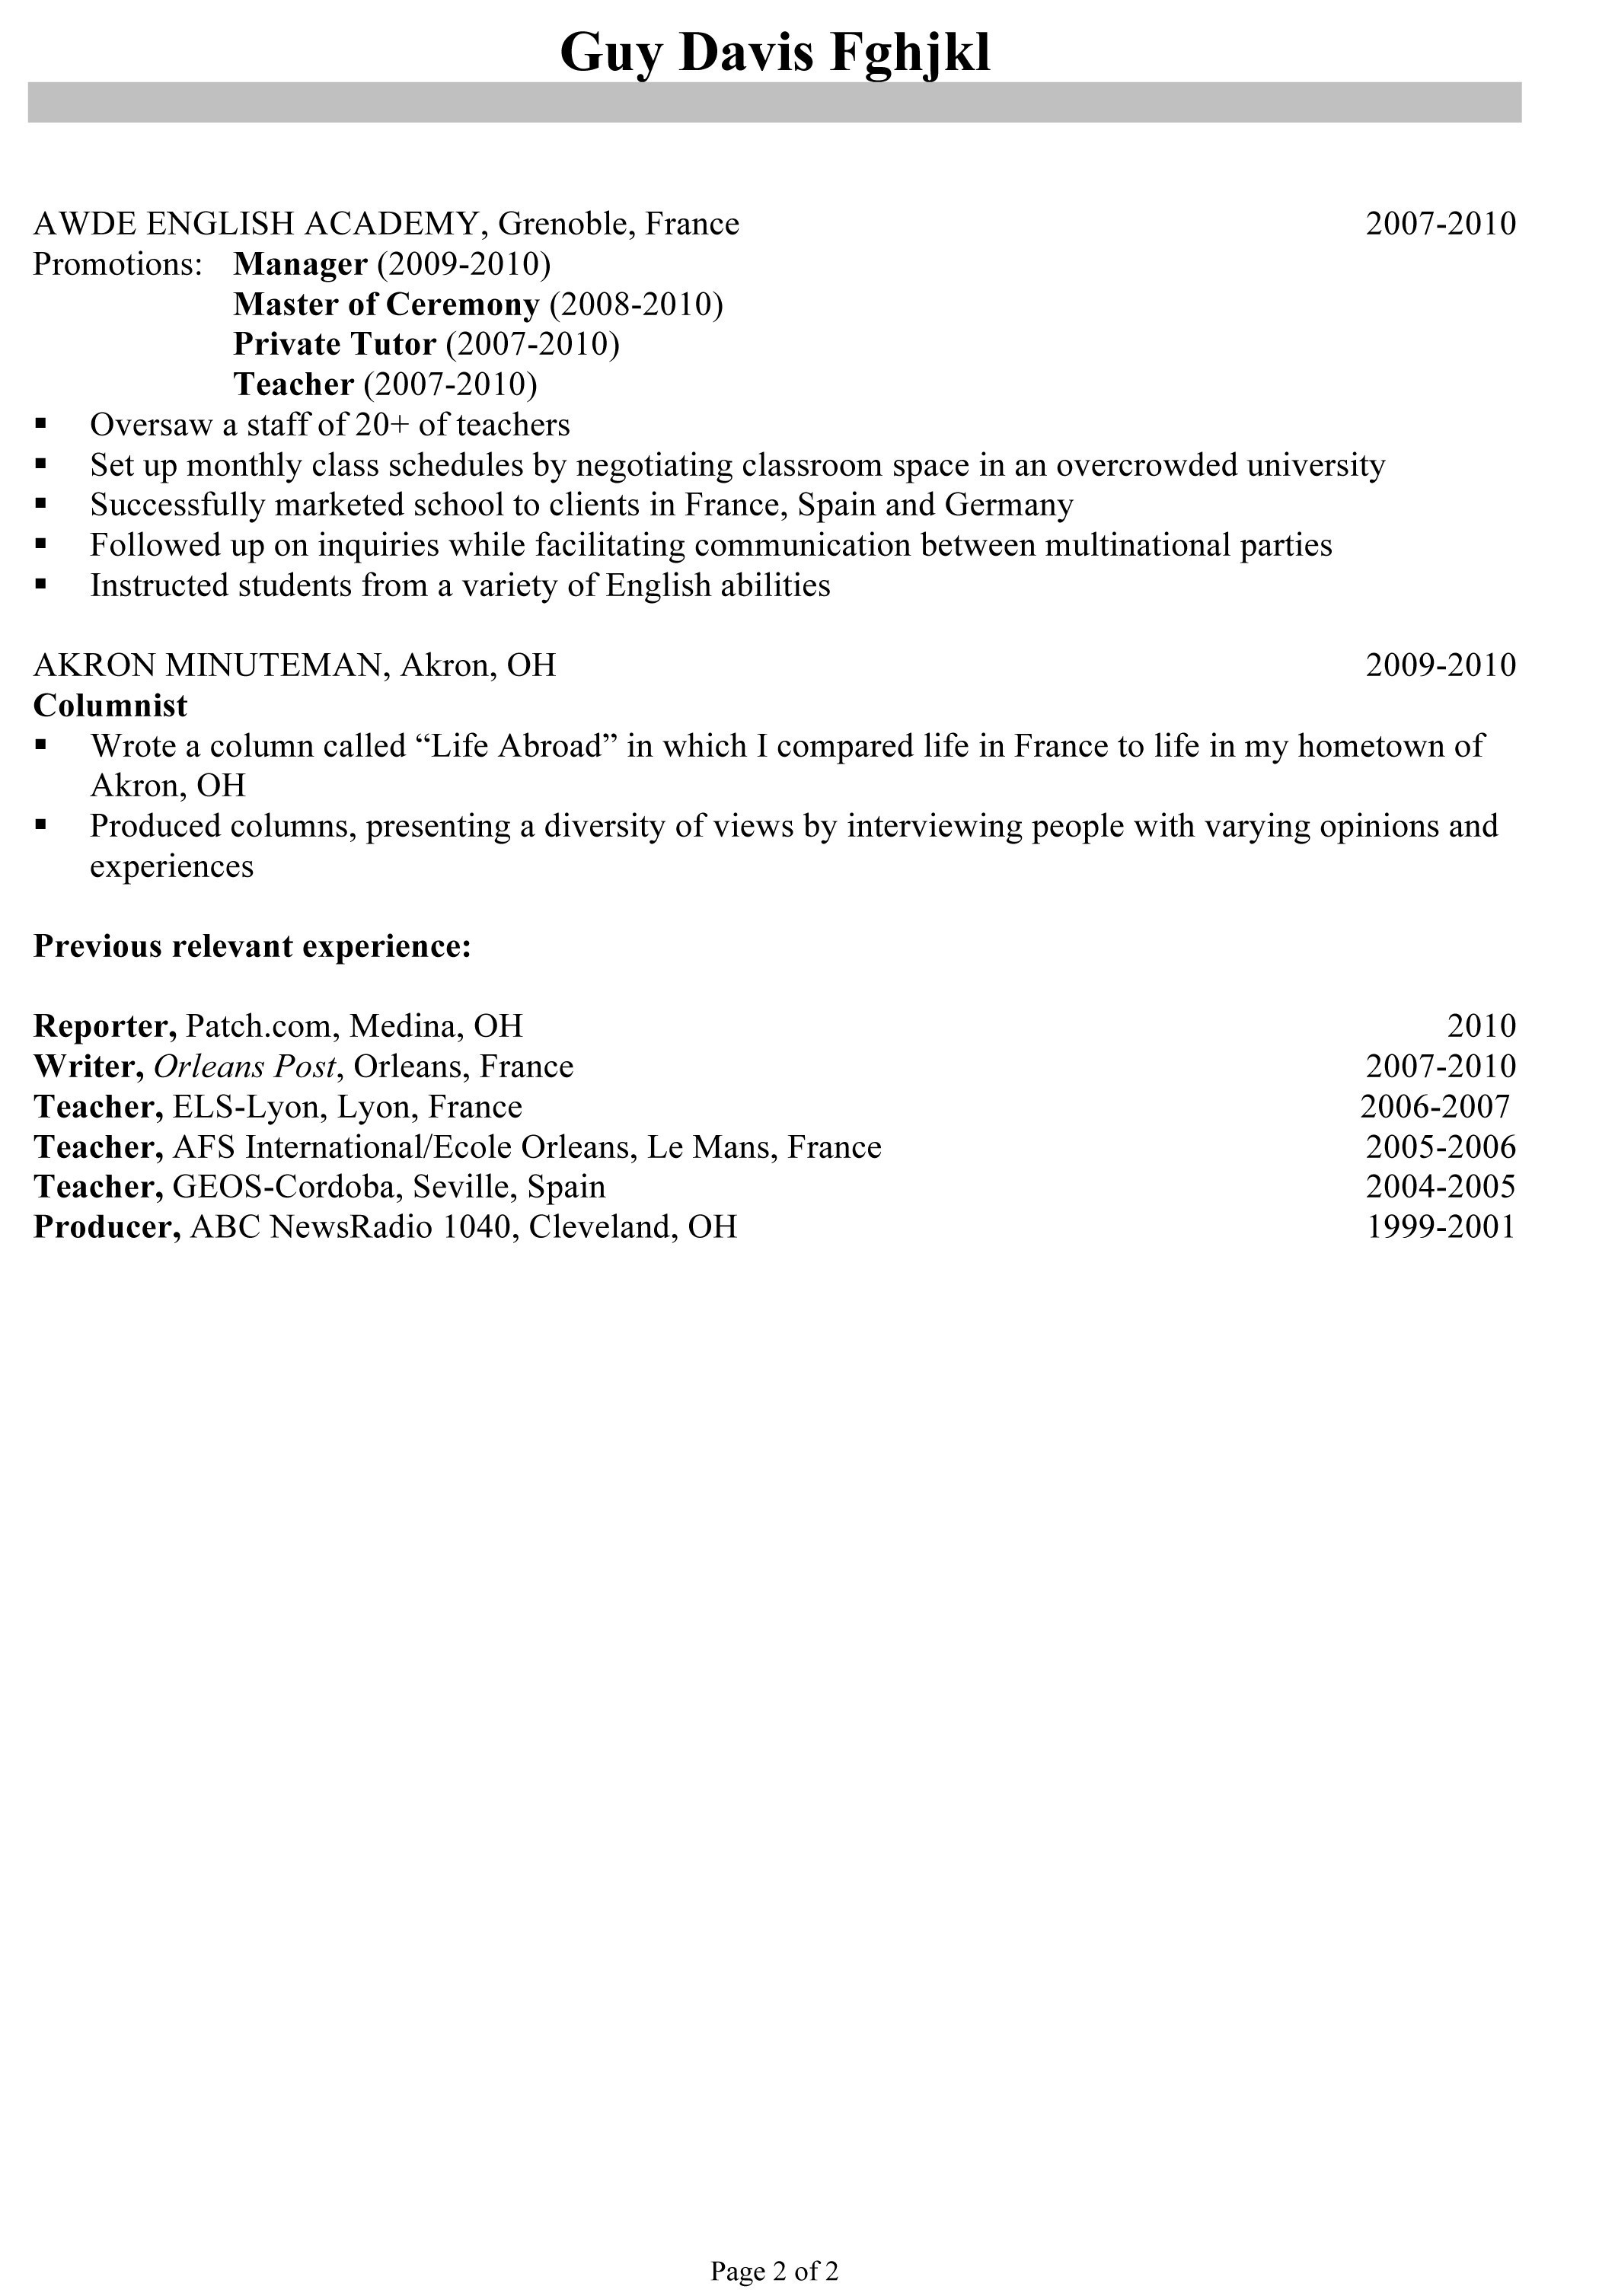 Production assistant Resume Template - Production assistant Resume Beautiful Unique Sample College